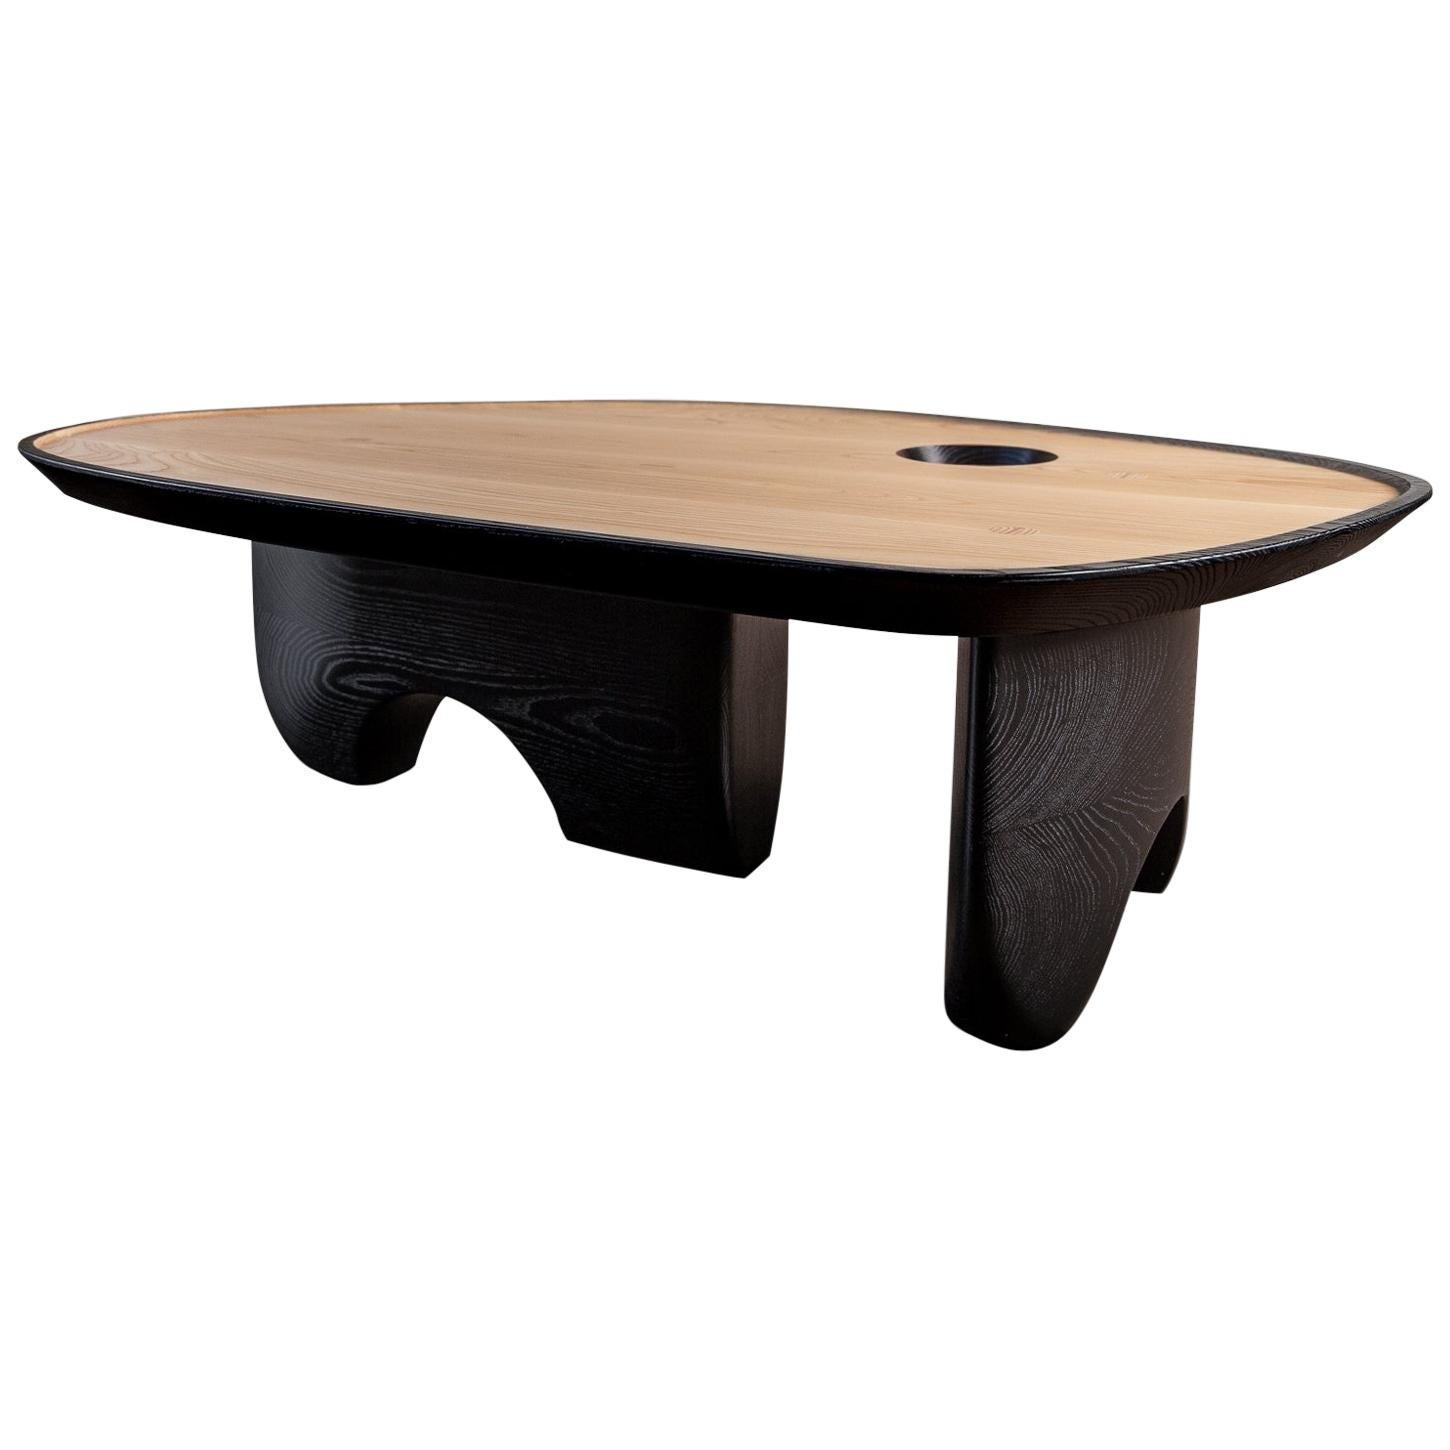 Menhir organic design Coffee Table, customisable design by Toad Gallery London